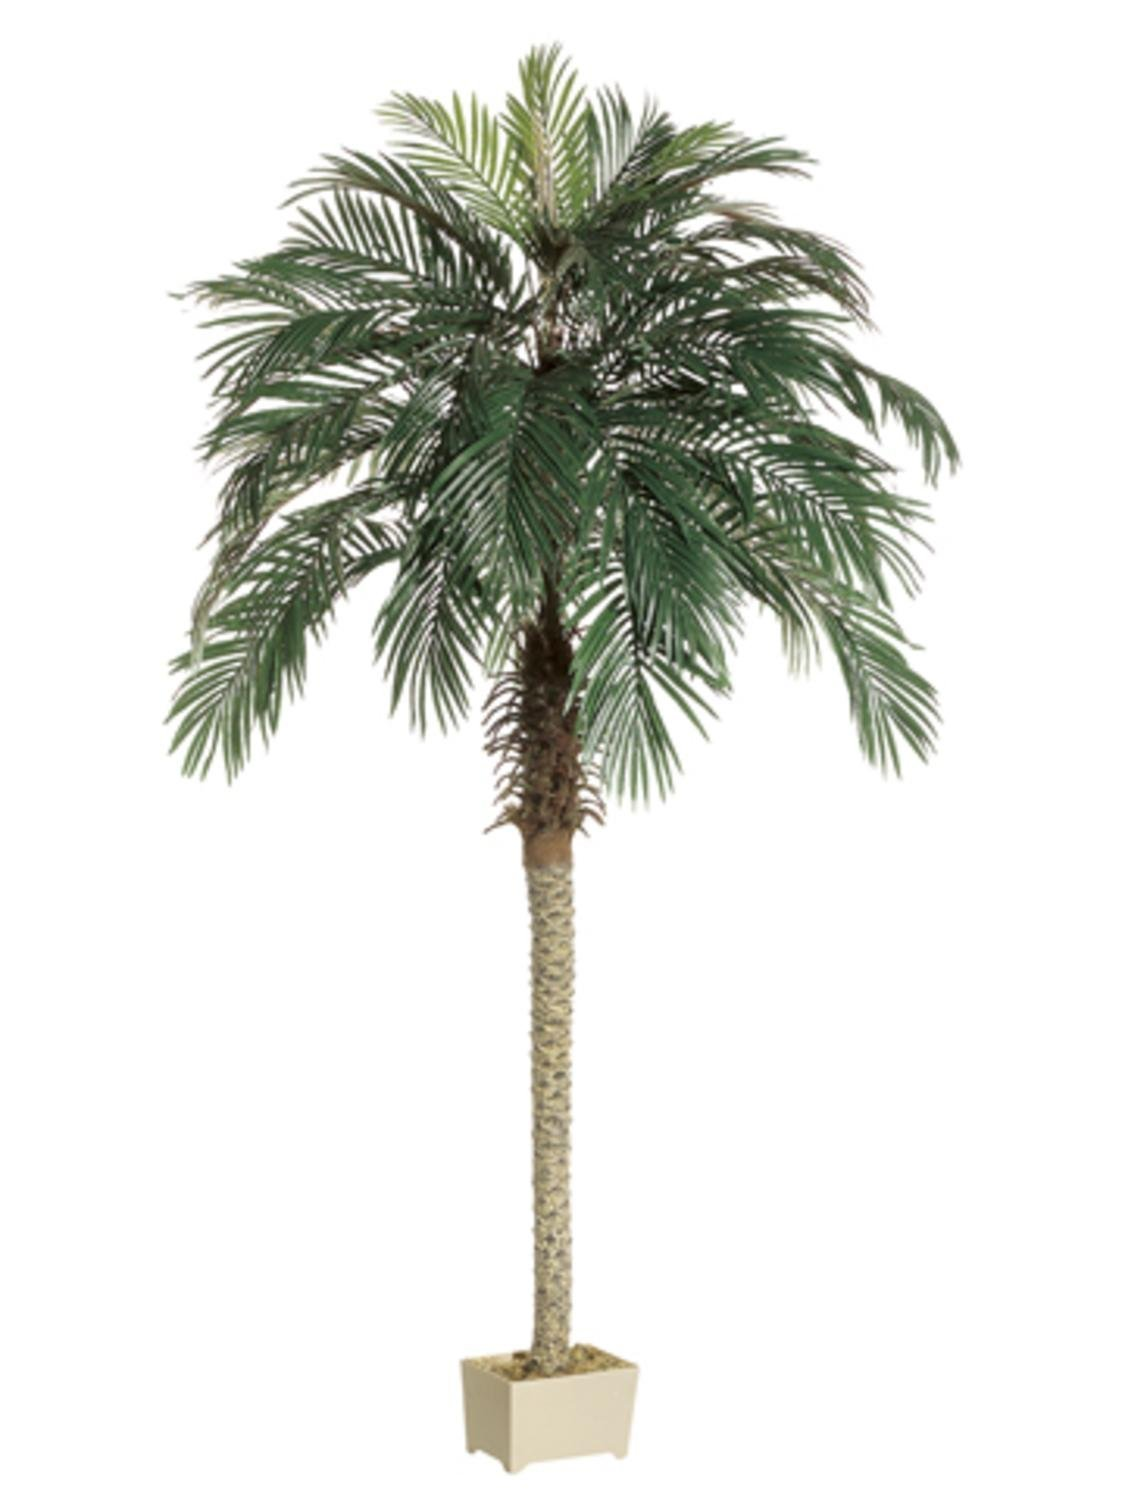 Pack of 2 Potted Artificial Silk Phoenix Palm Trees 7'